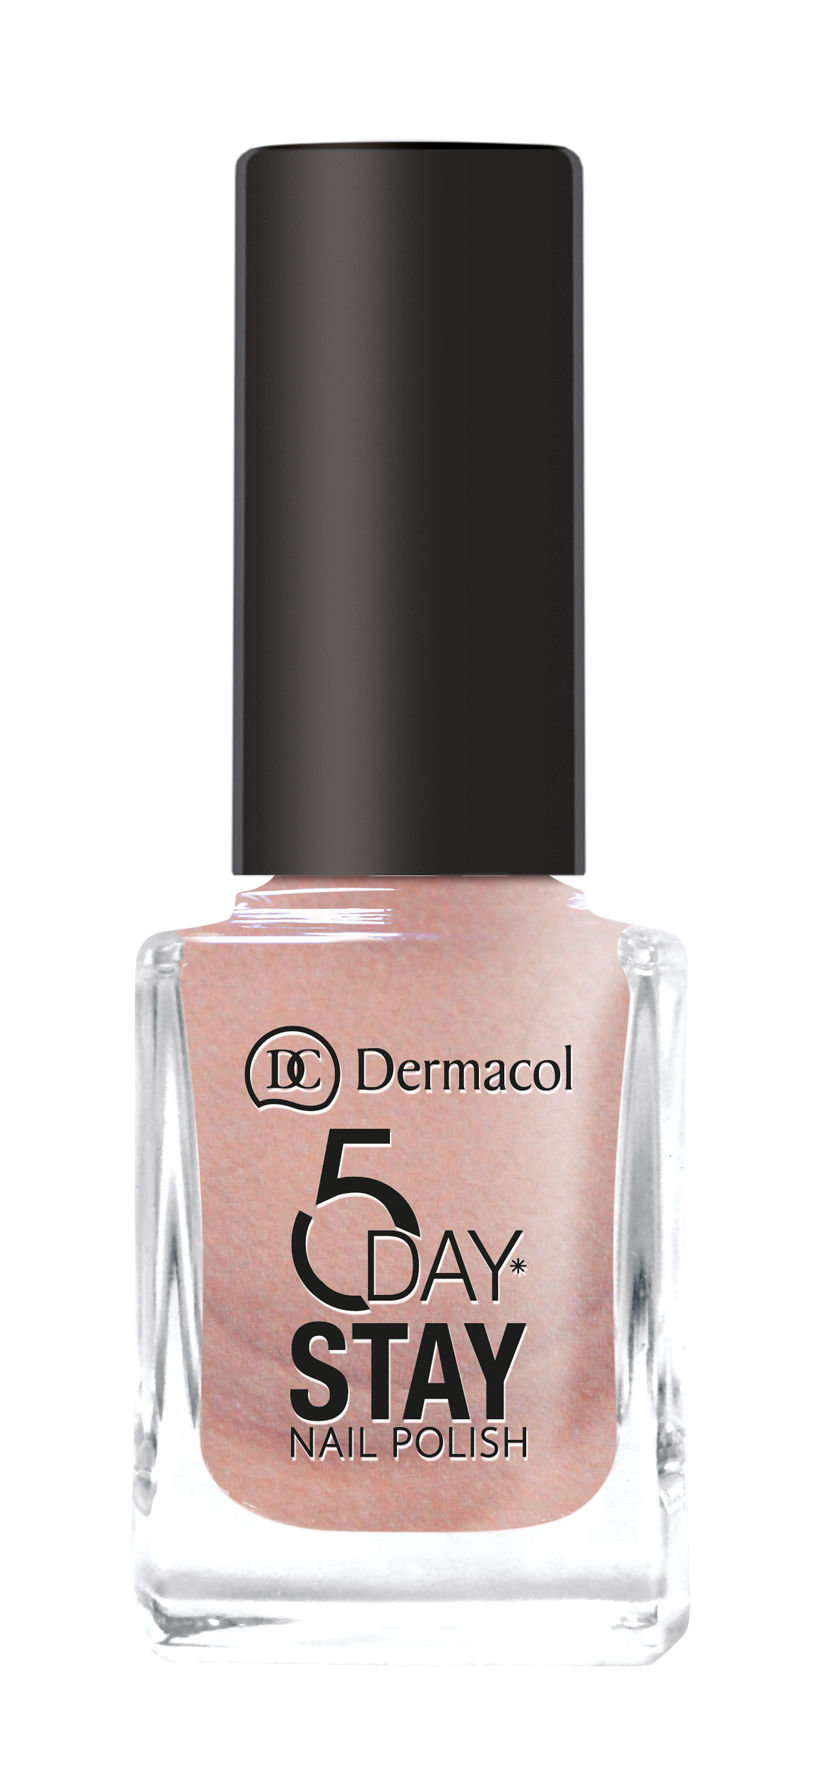 Dermacol 5 Day Stay Cosmetic 11ml 13 Country Club